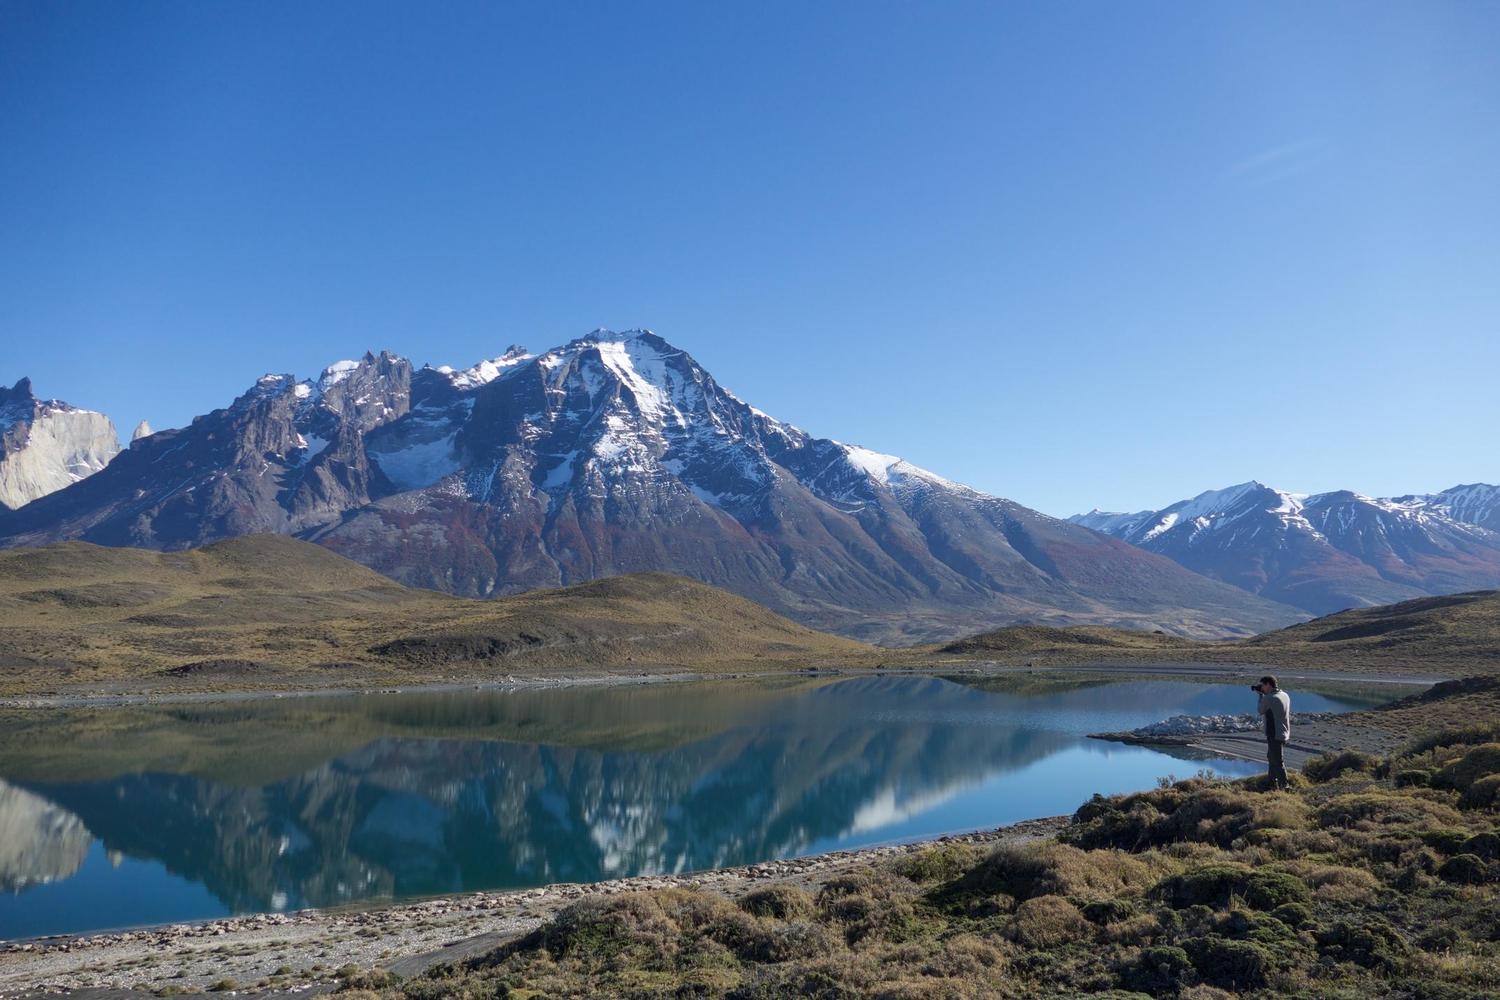 A still afternoon crossing Torres del Paine.